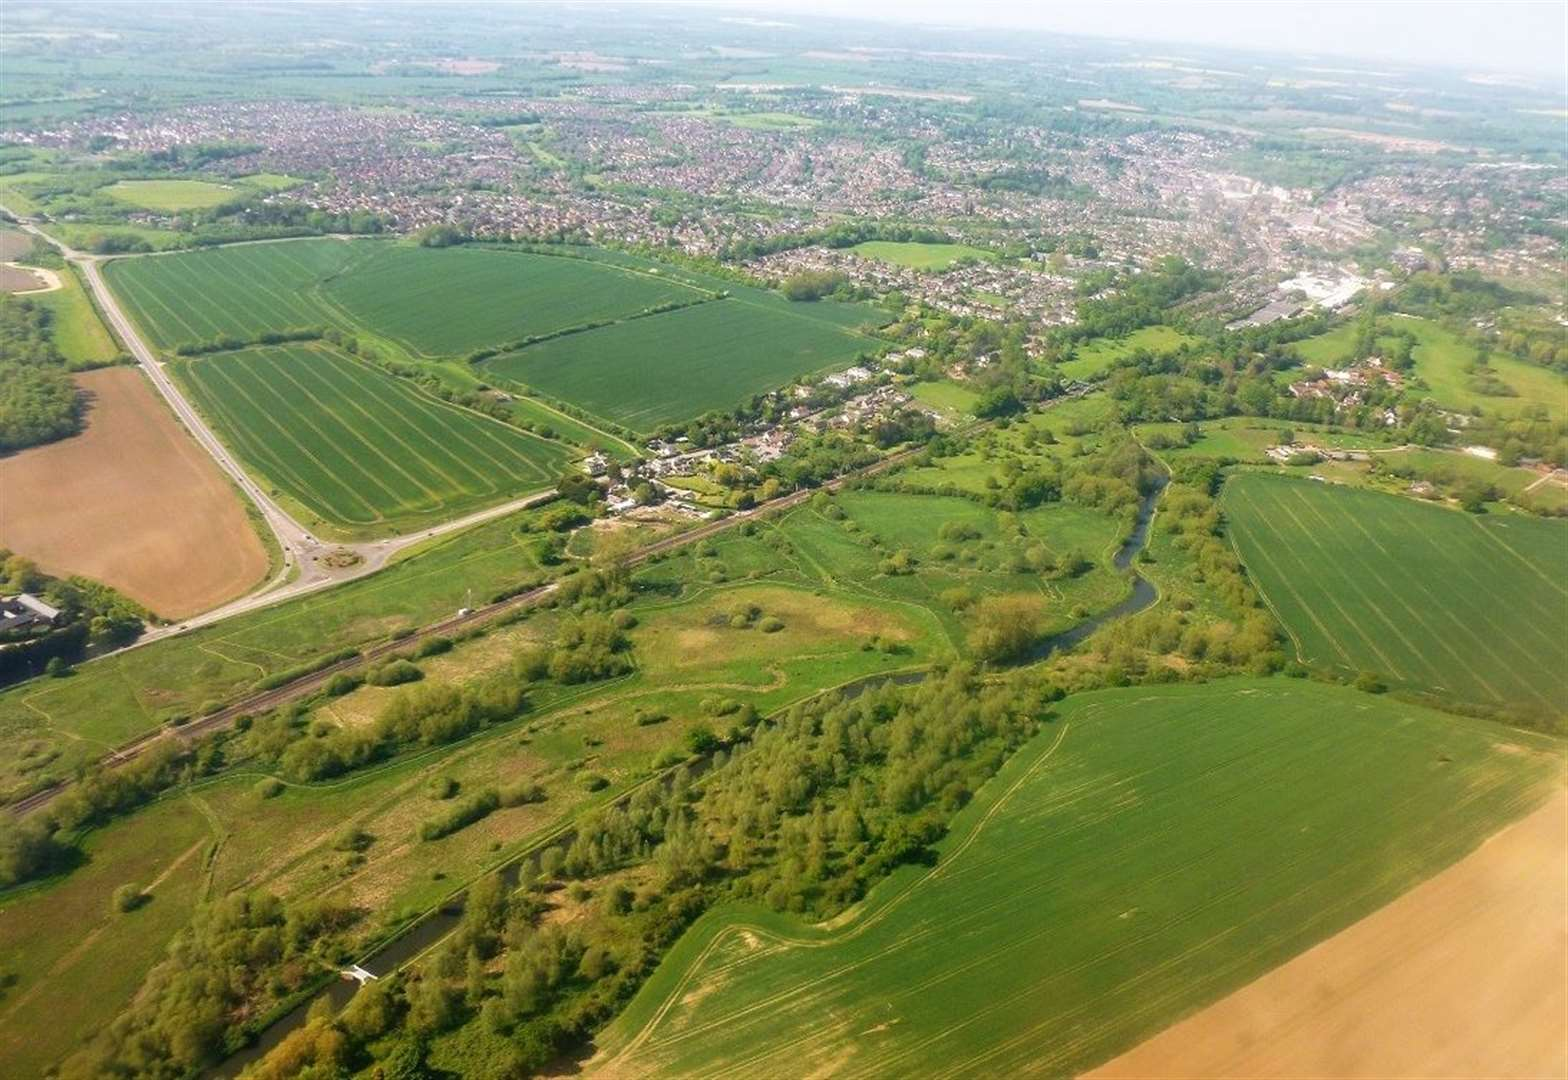 CPRE call on Herts election candidates to protect the Green Belt